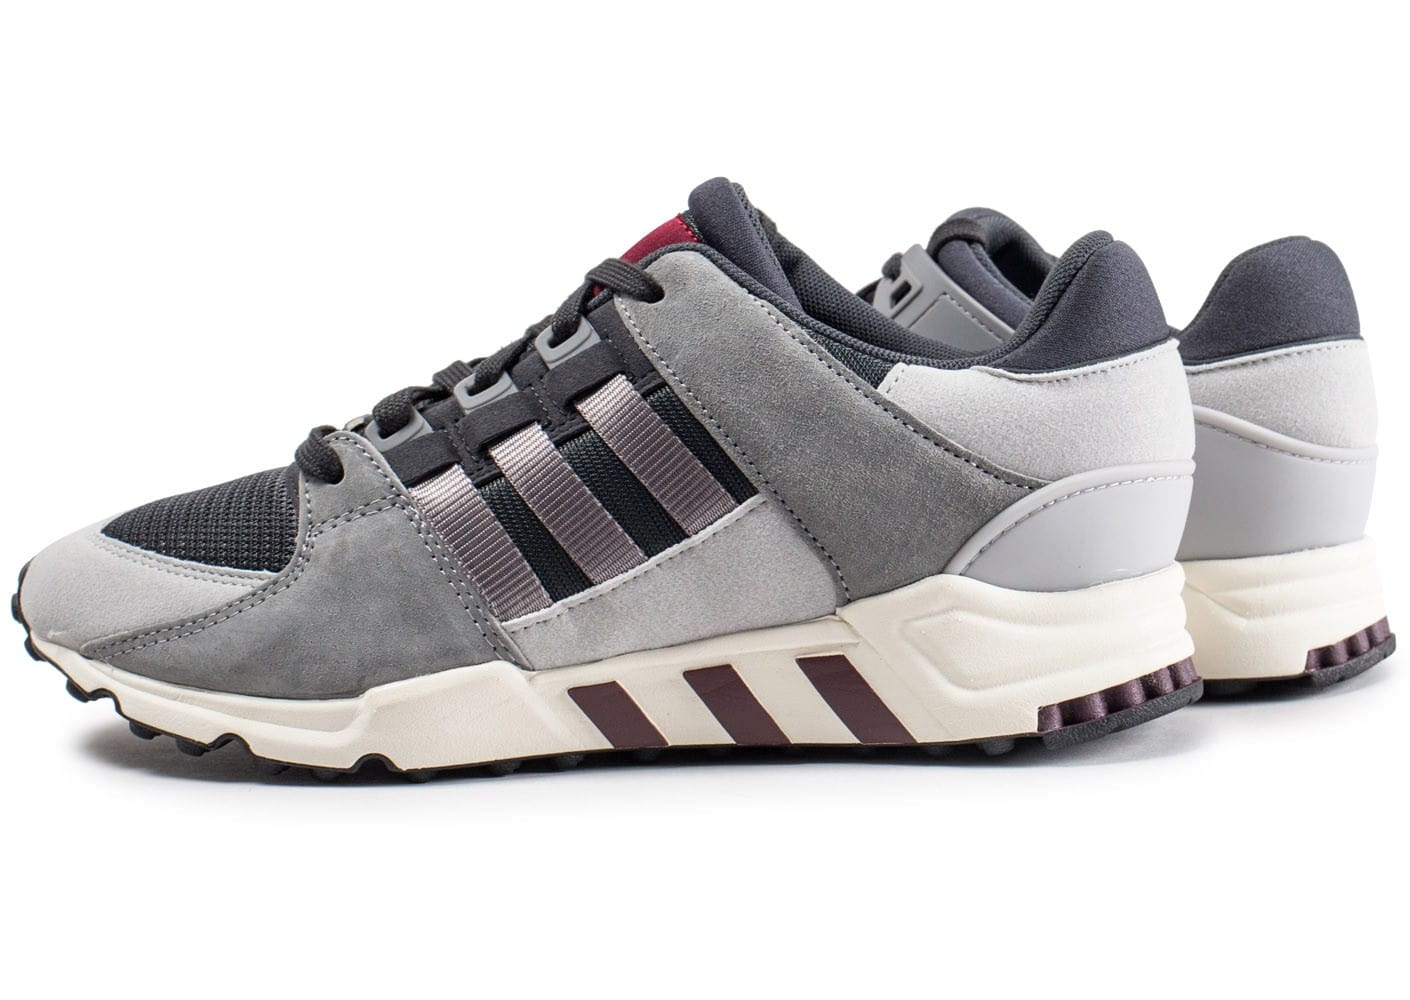 adidas Originals Eqt Support Rf Blanc/Gris/Rouge - Chaussures Baskets basses Homme